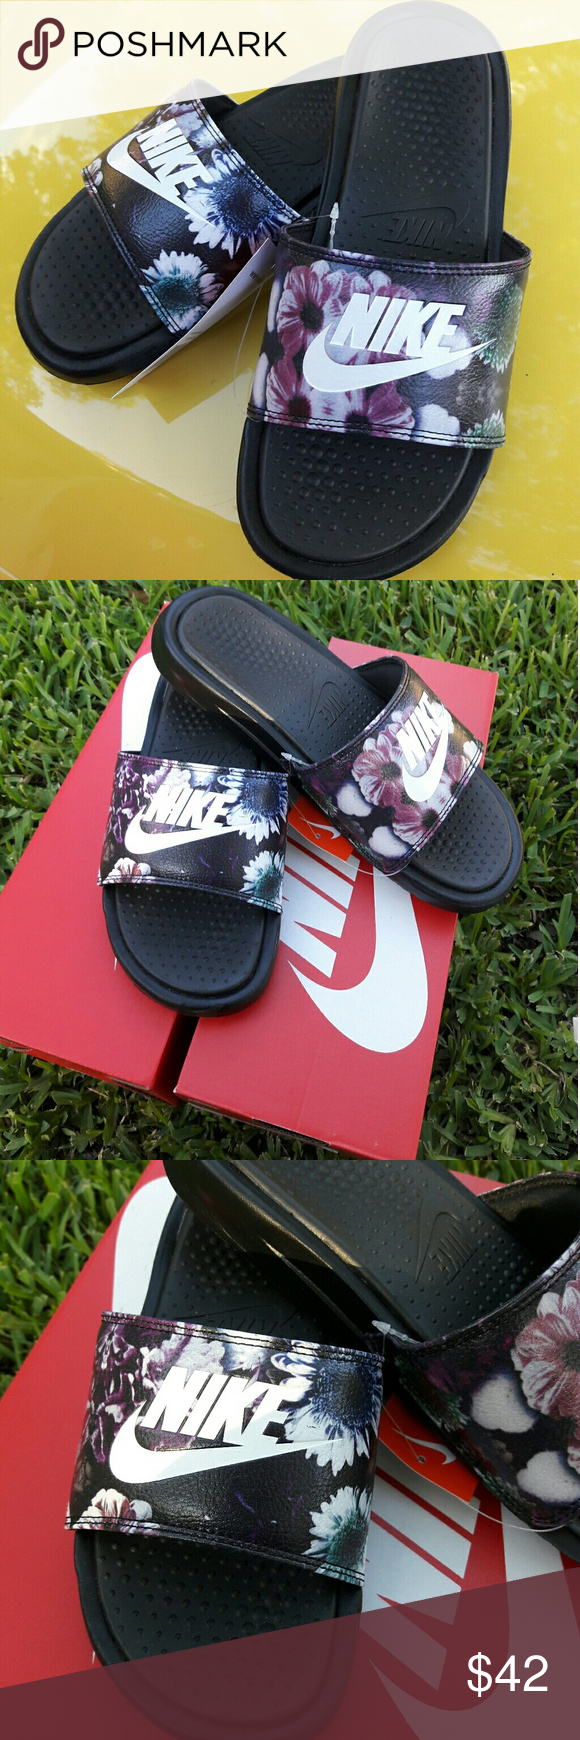 6e459503a Women s Nike Benassi Duo Ultra Premium Slides Women s Nike Benassi Duo Ultra  Premium Slides Brand New Women s Nike Benassi Duo Premium Slides in a  beautiful ...